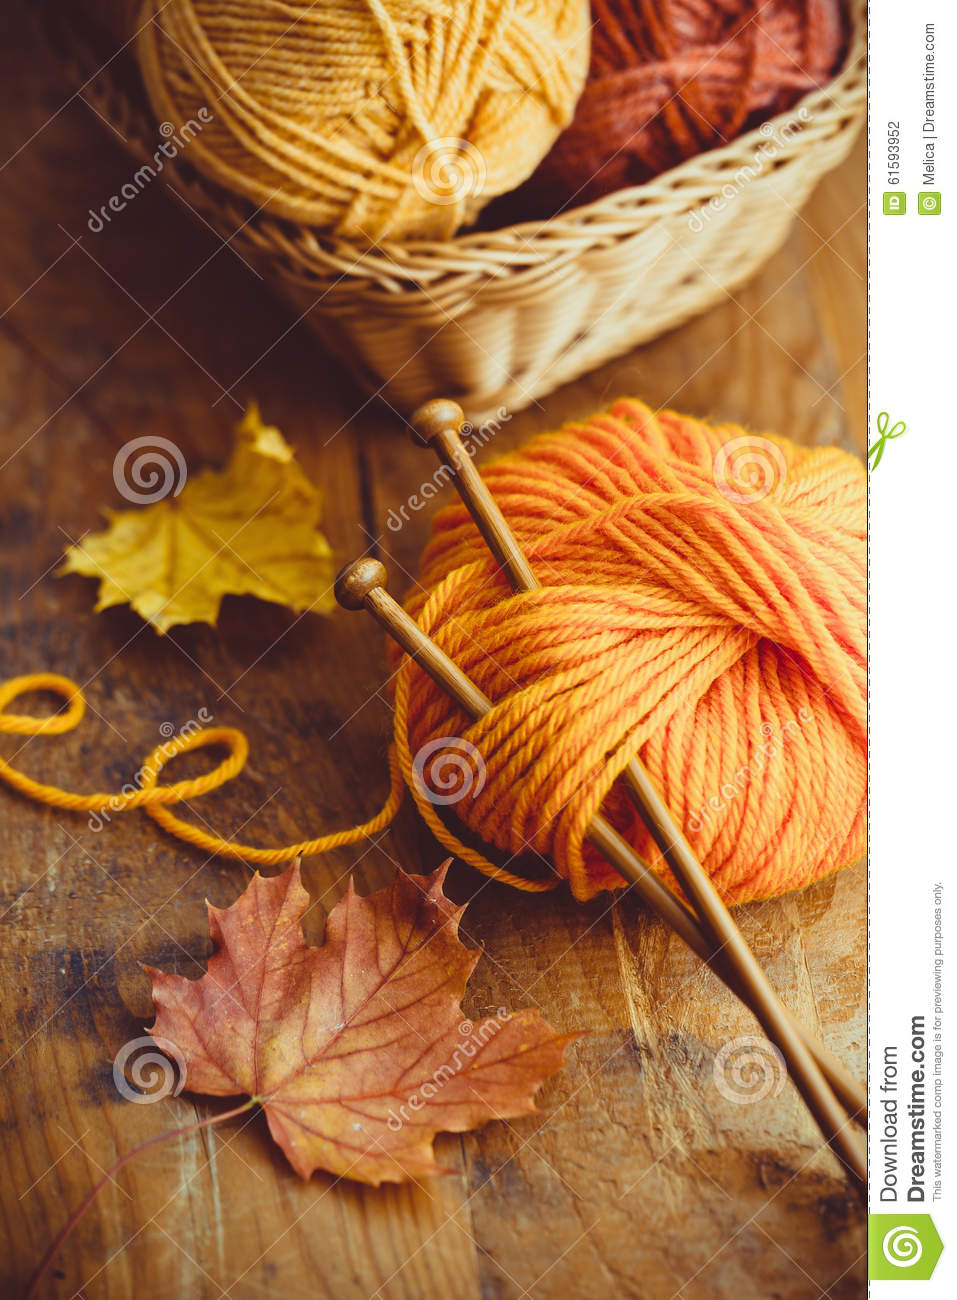 Yarn Knitting : Autumn knitting, knitting needles and yarn in autumn colors.